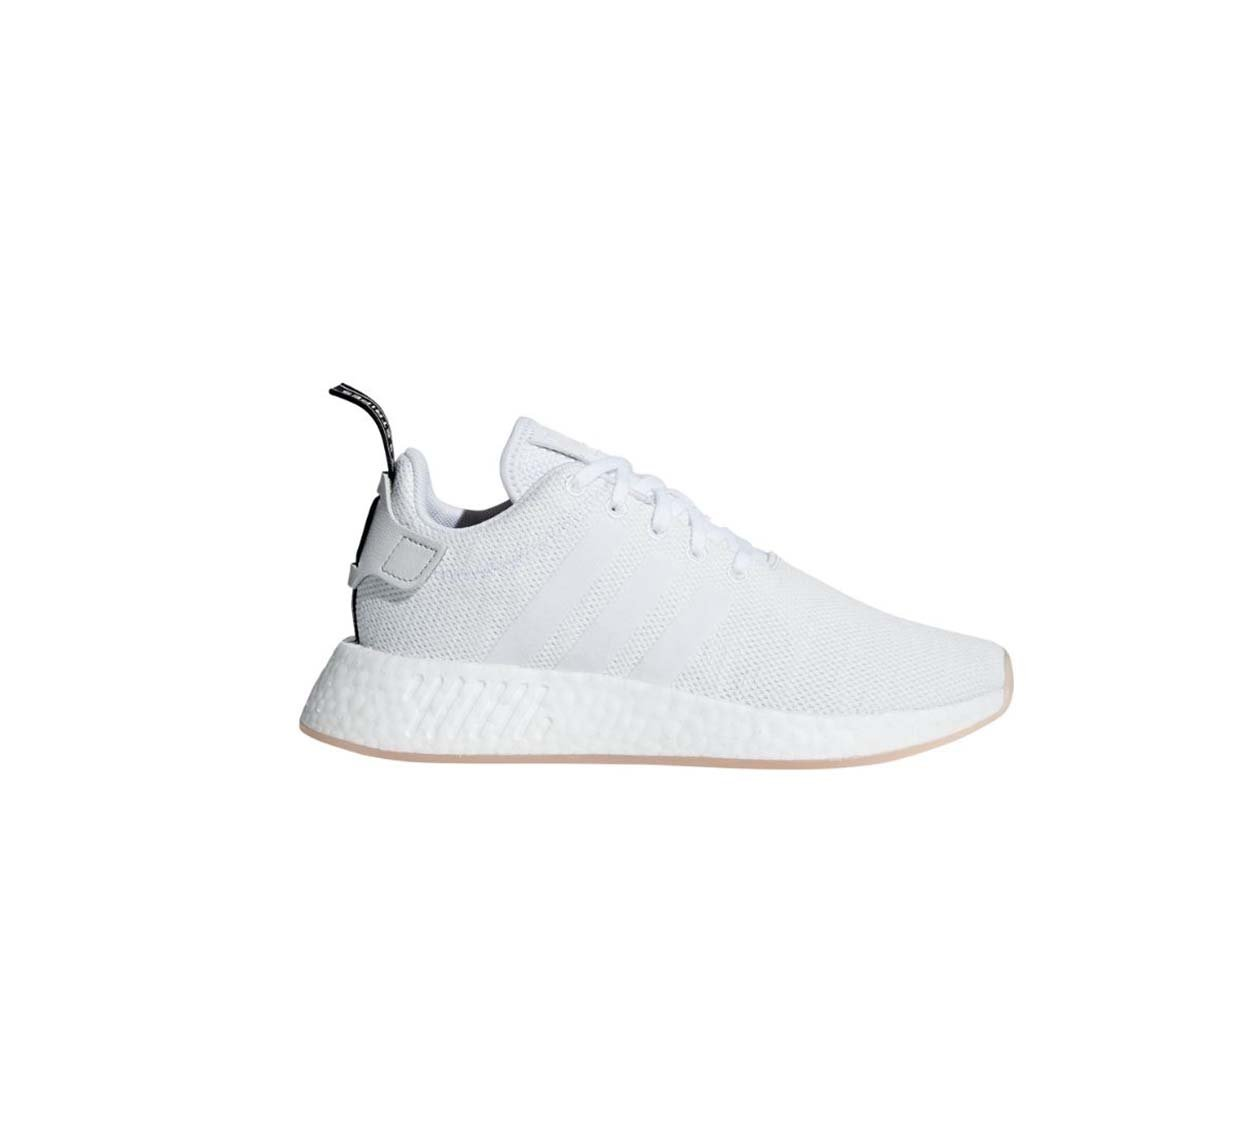 adidas Originals Women's NMD_r2 W Sneaker B07CN8BV5P 5.5 M US|Crystal White / Footwear White-core Black